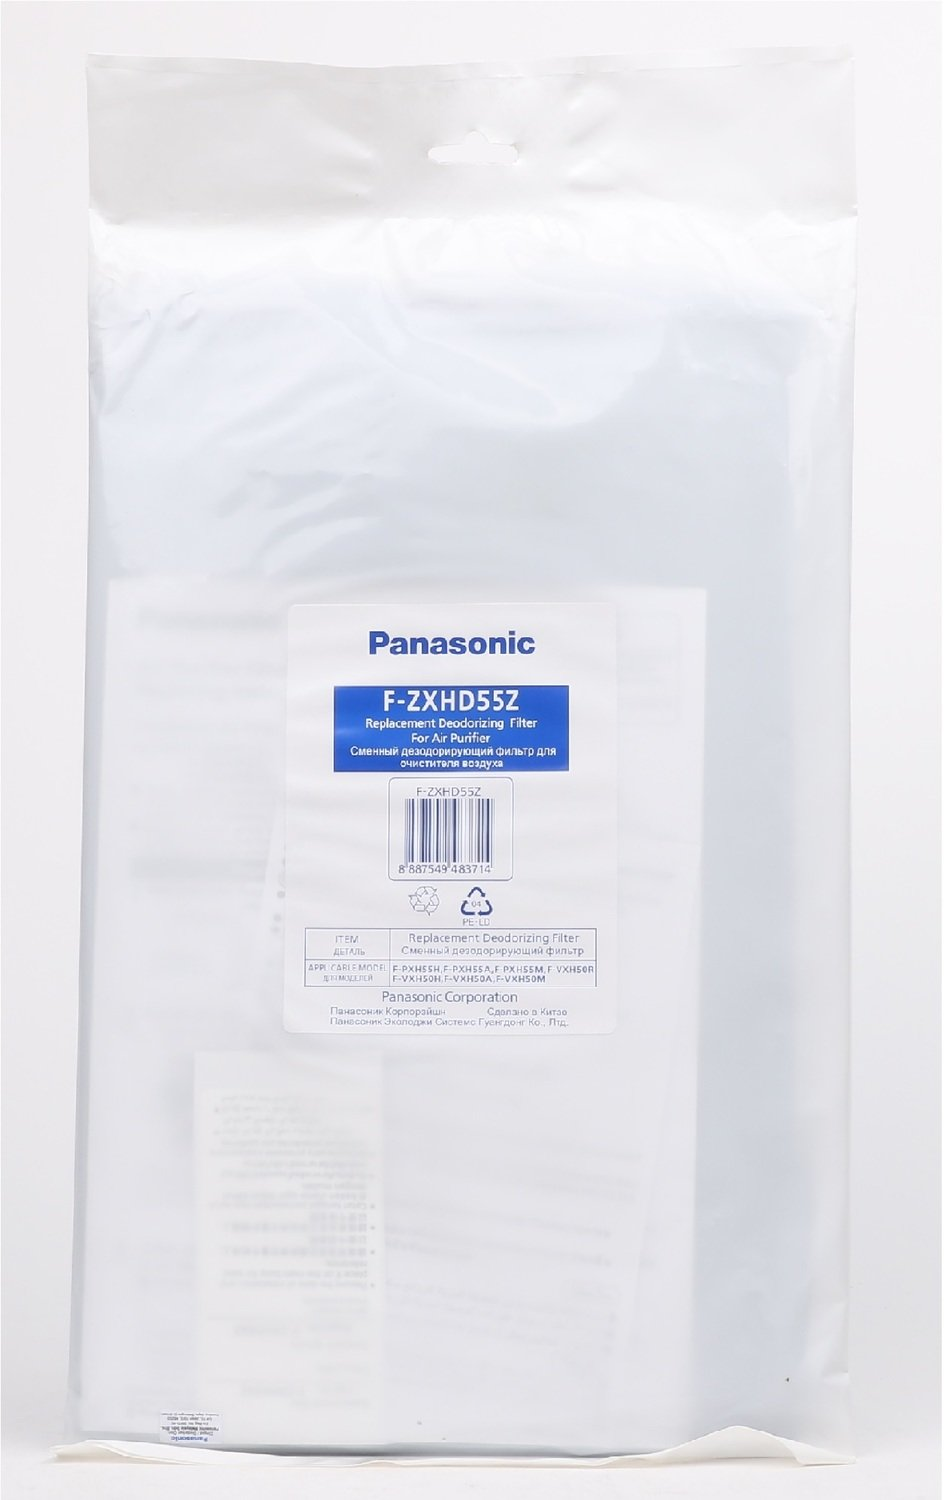 Panasonic Deodorizing Filter F-ZXHD55Z for F-PXH55A / F-VXH50A